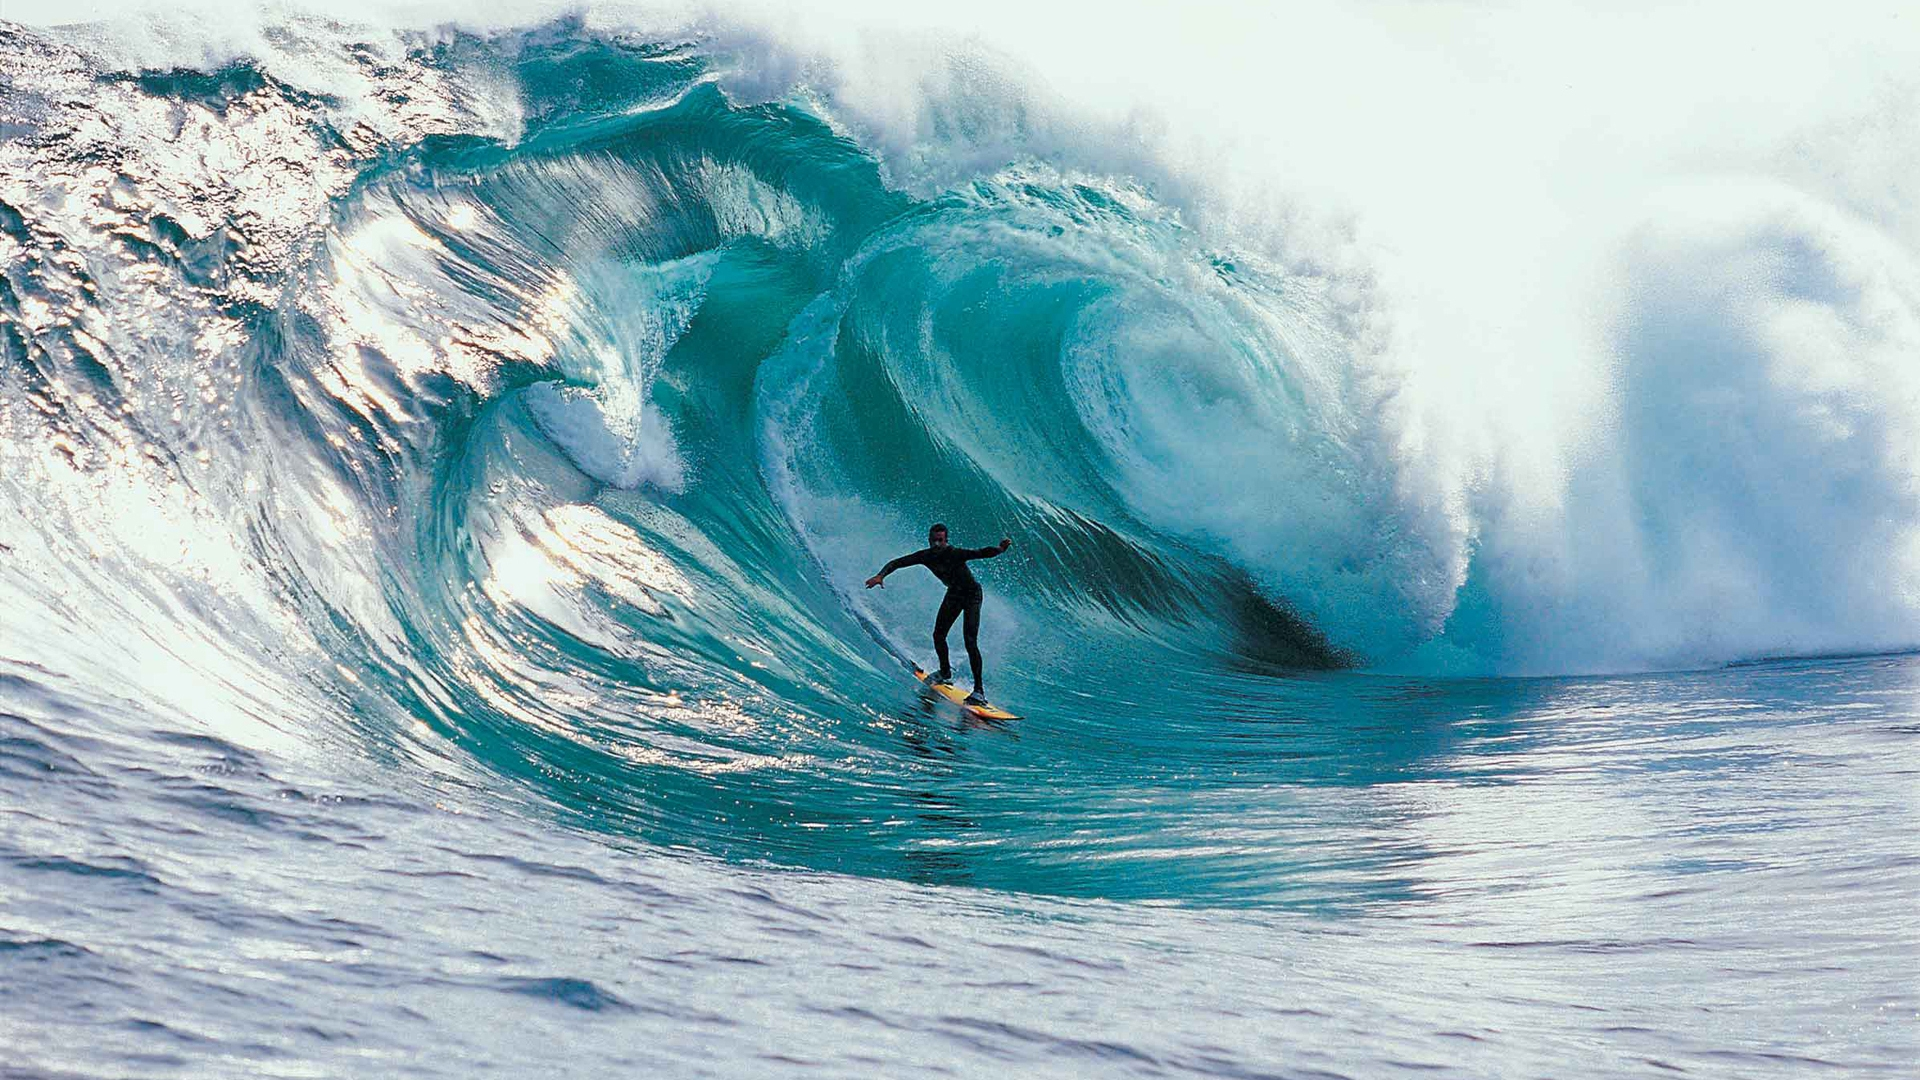 surfing wallpaper full hd - photo #33